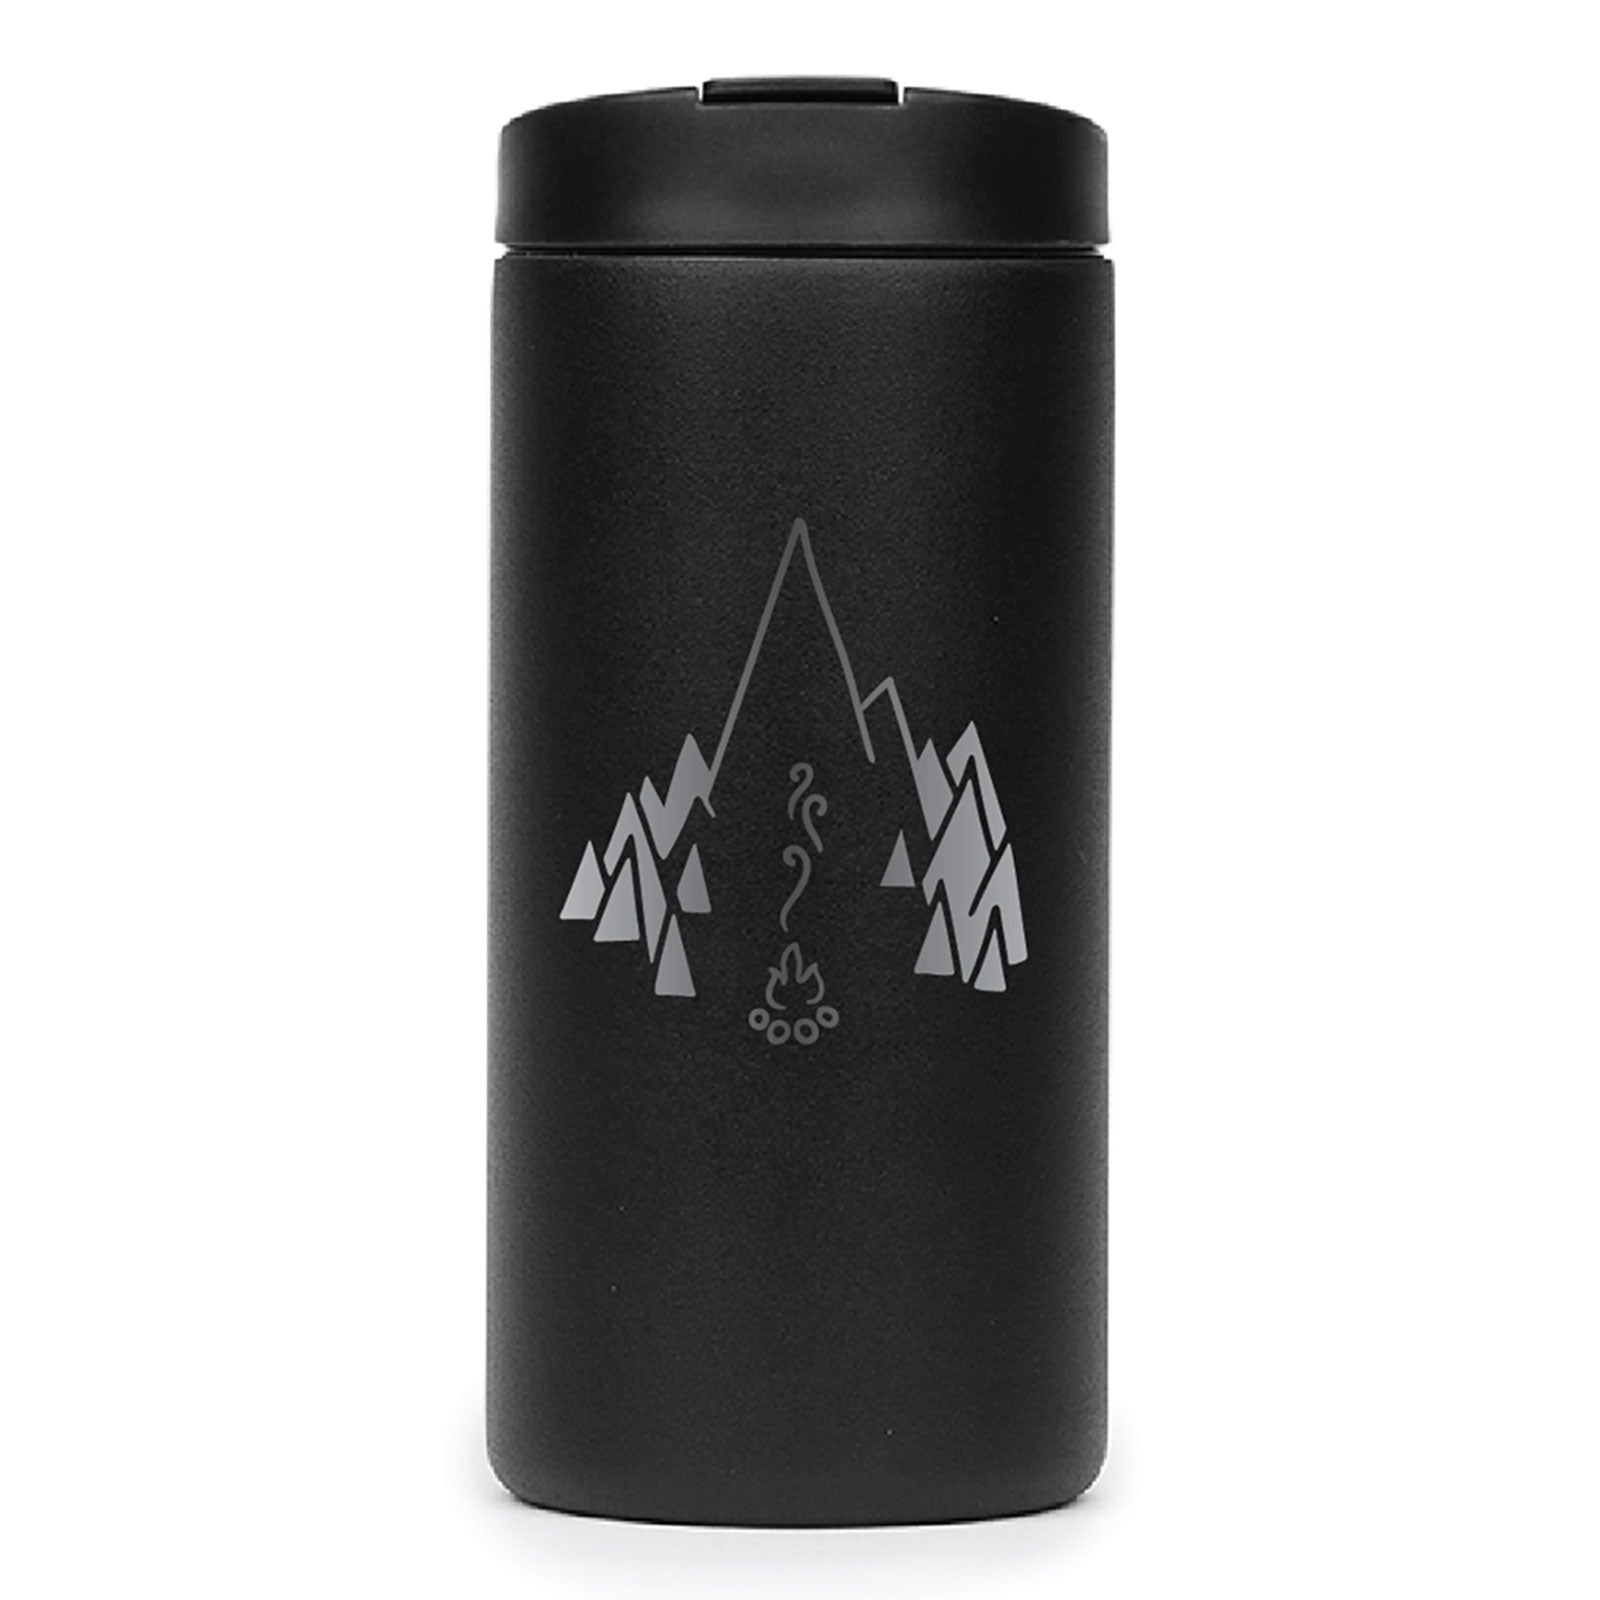 BPA-free, leak-proof black MiiR Travel Tumbler with campfire illustration and vacuum insulated stainless-steel